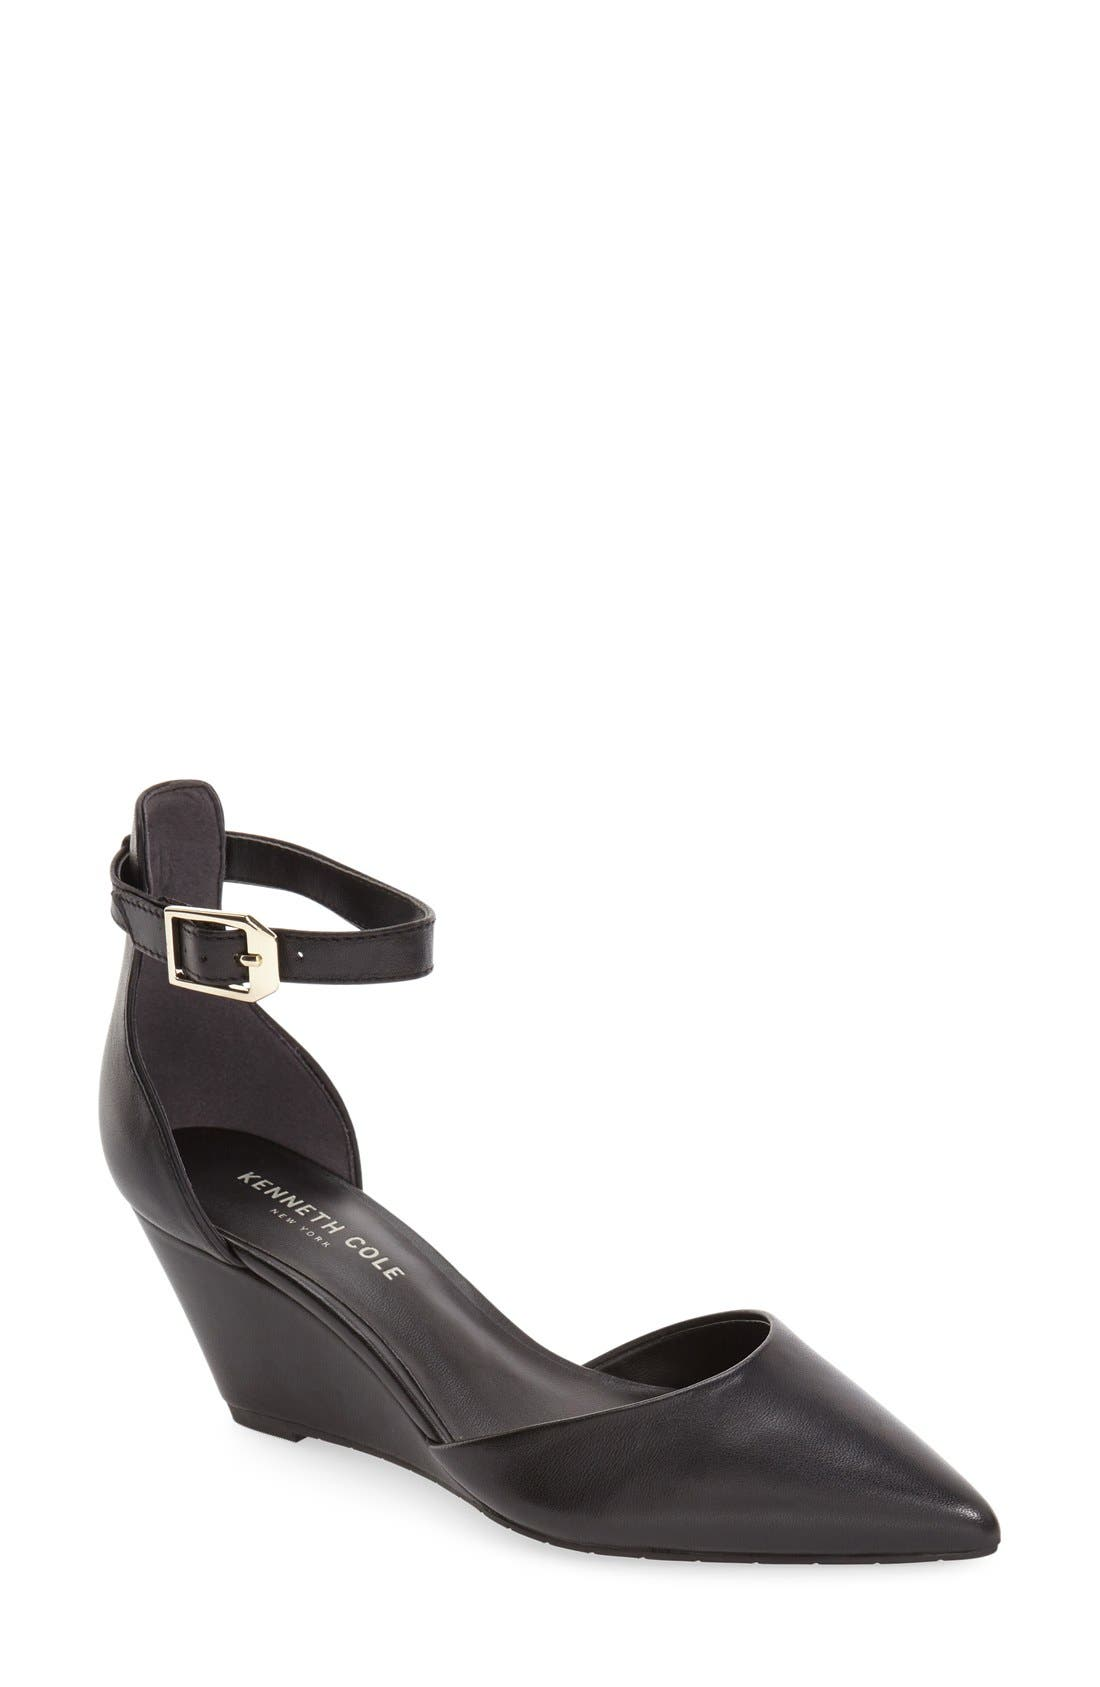 KENNETH COLE NEW YORK 'Emery' Pointy Toe Wedge